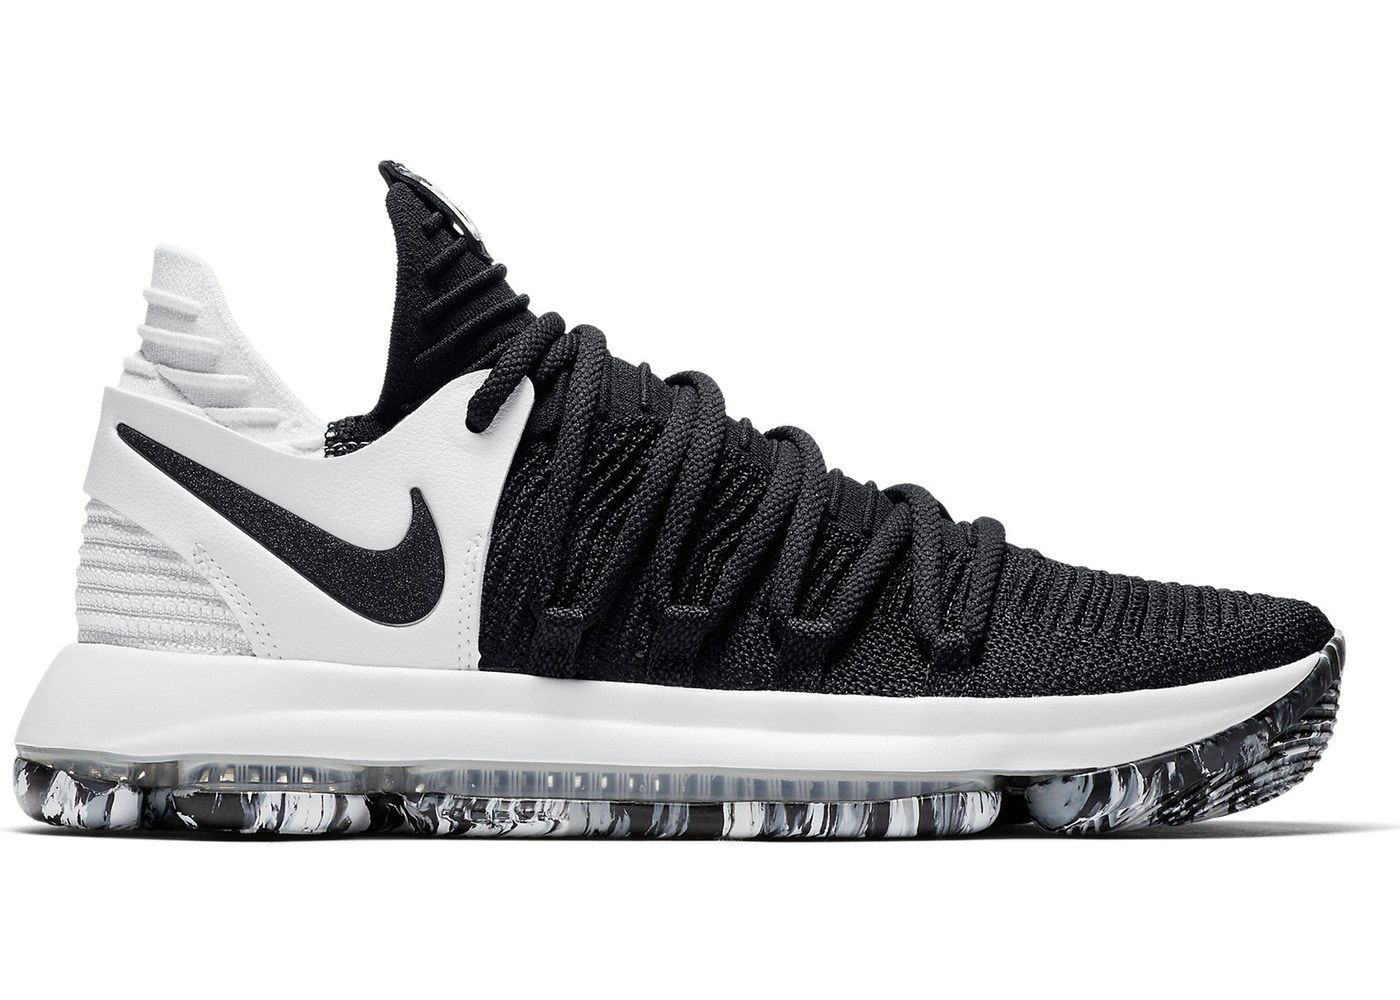 new styles 565cd 71795 Nike KD 10 Black White | Christmas List in 2019 | Black nike ...